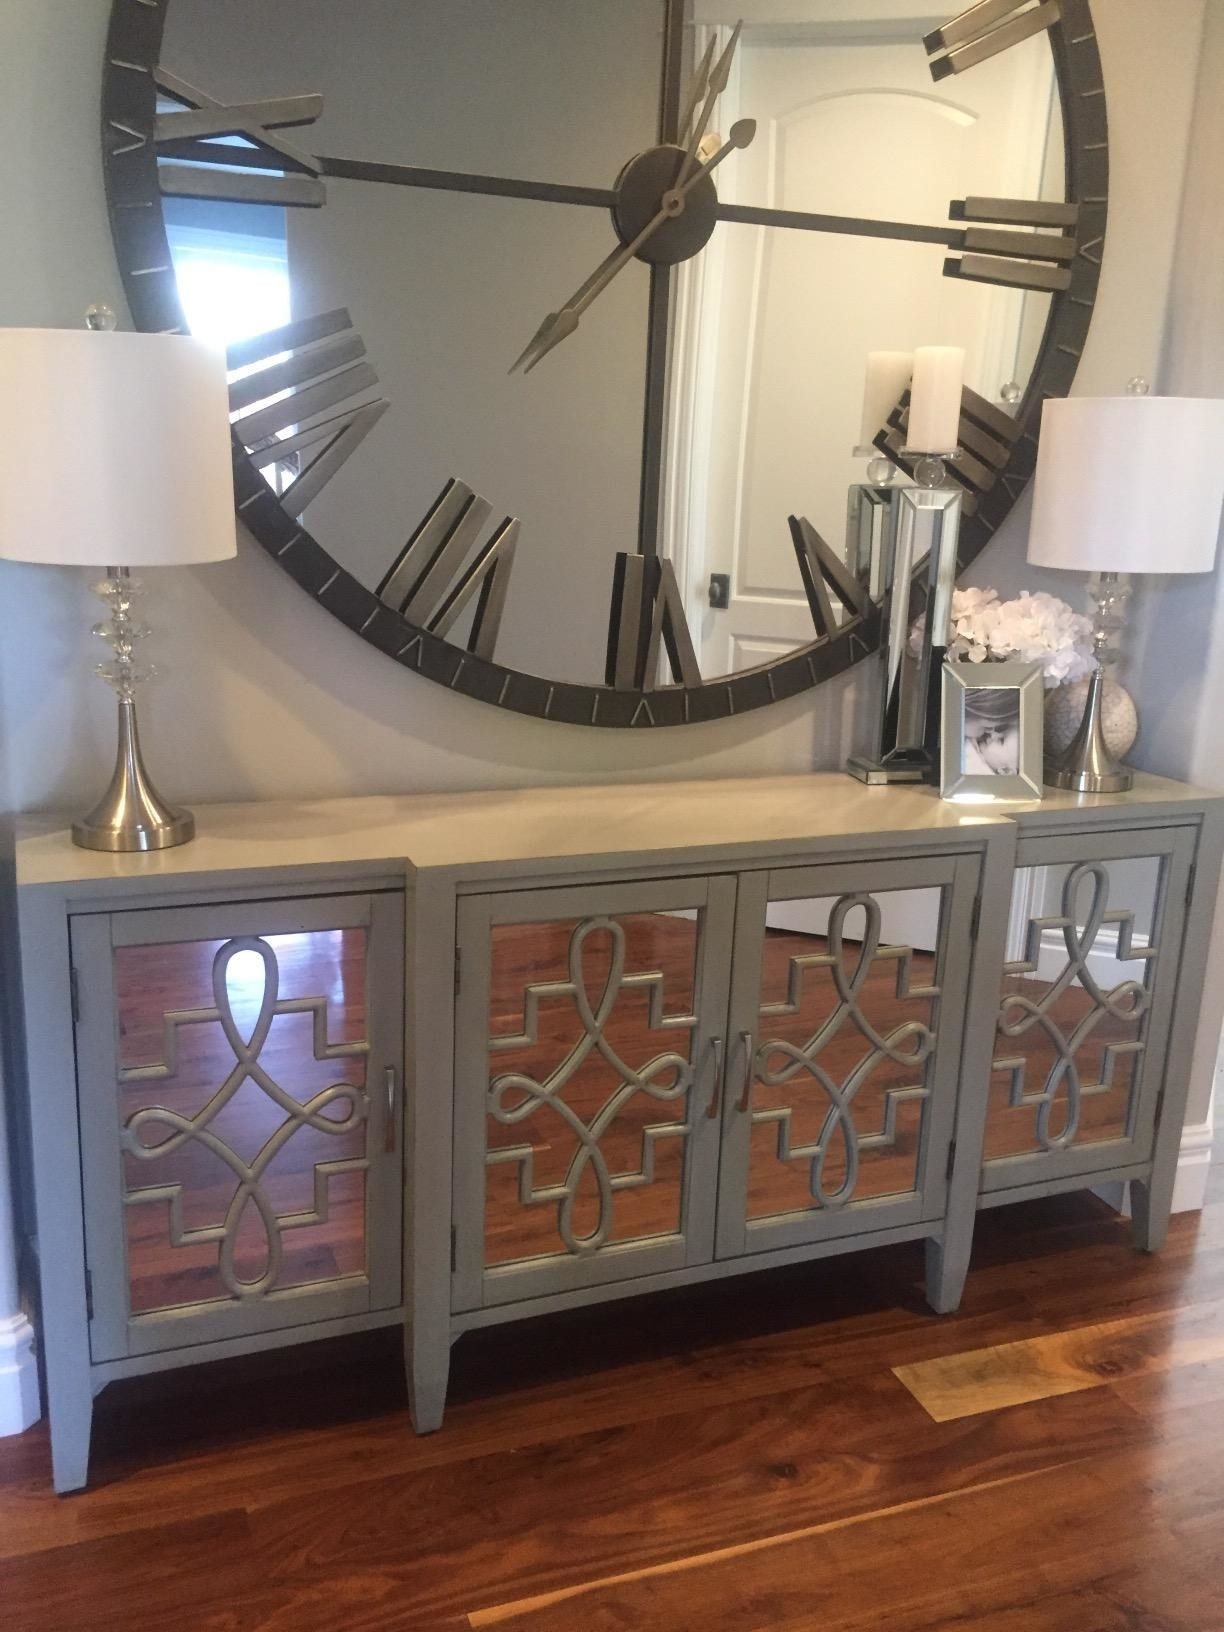 Reviewer pic of the thin wood-top table with four doors in the front with mirrors and a design on top of them.